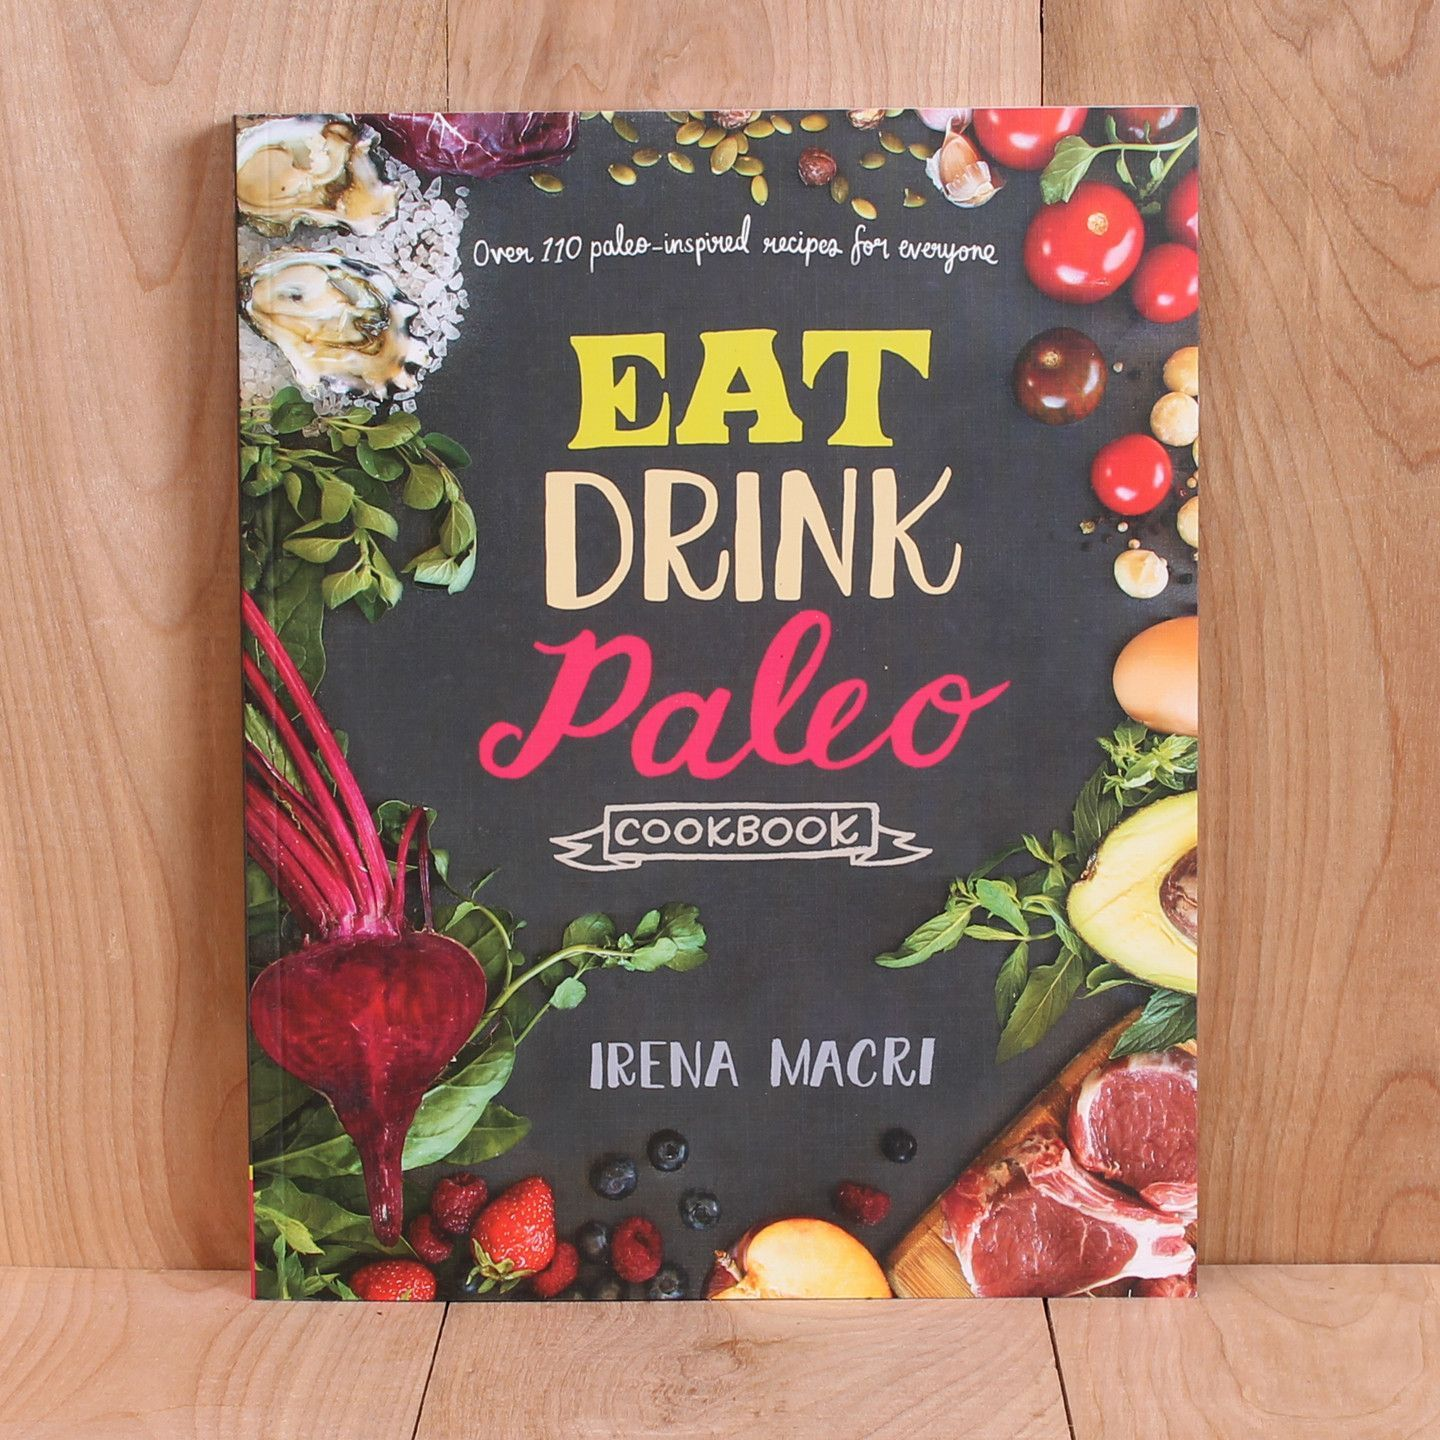 eat drink paleo cookbook over 110 paleoinspired recipes for everyone